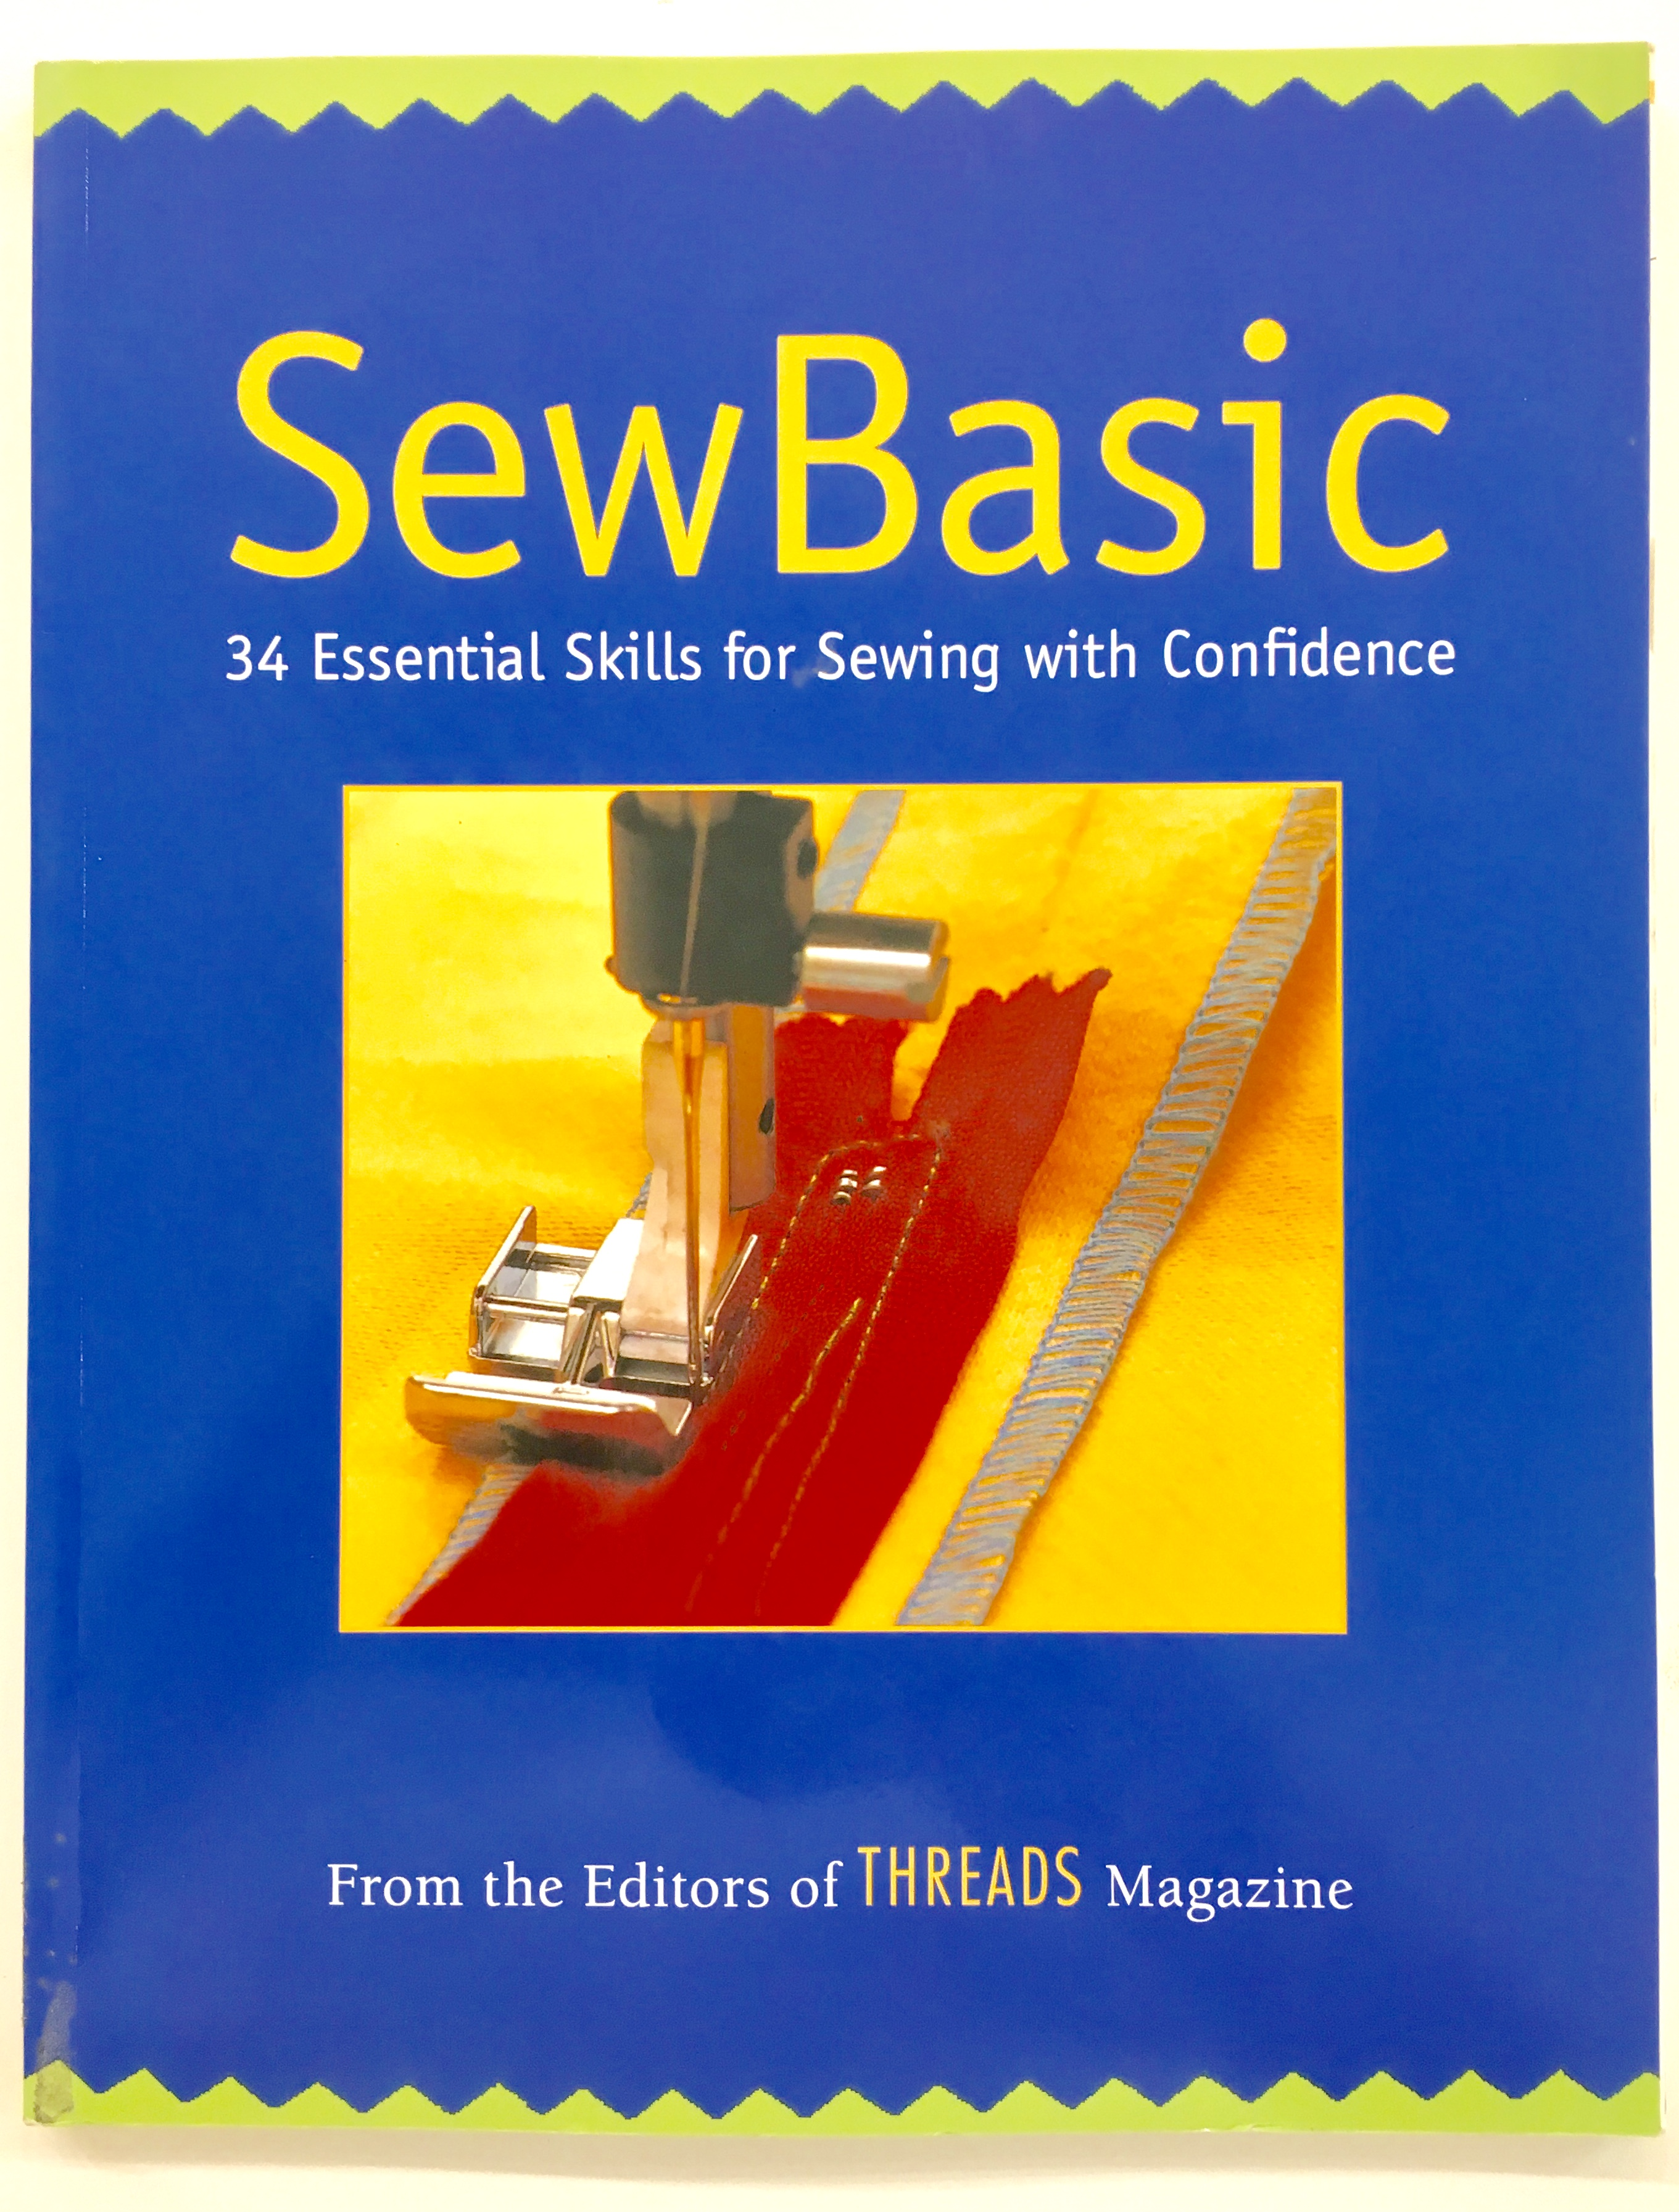 Sewing classes Chicago: Tchad: Workroom: Sewing studio: Library: Sew Basic: Cover